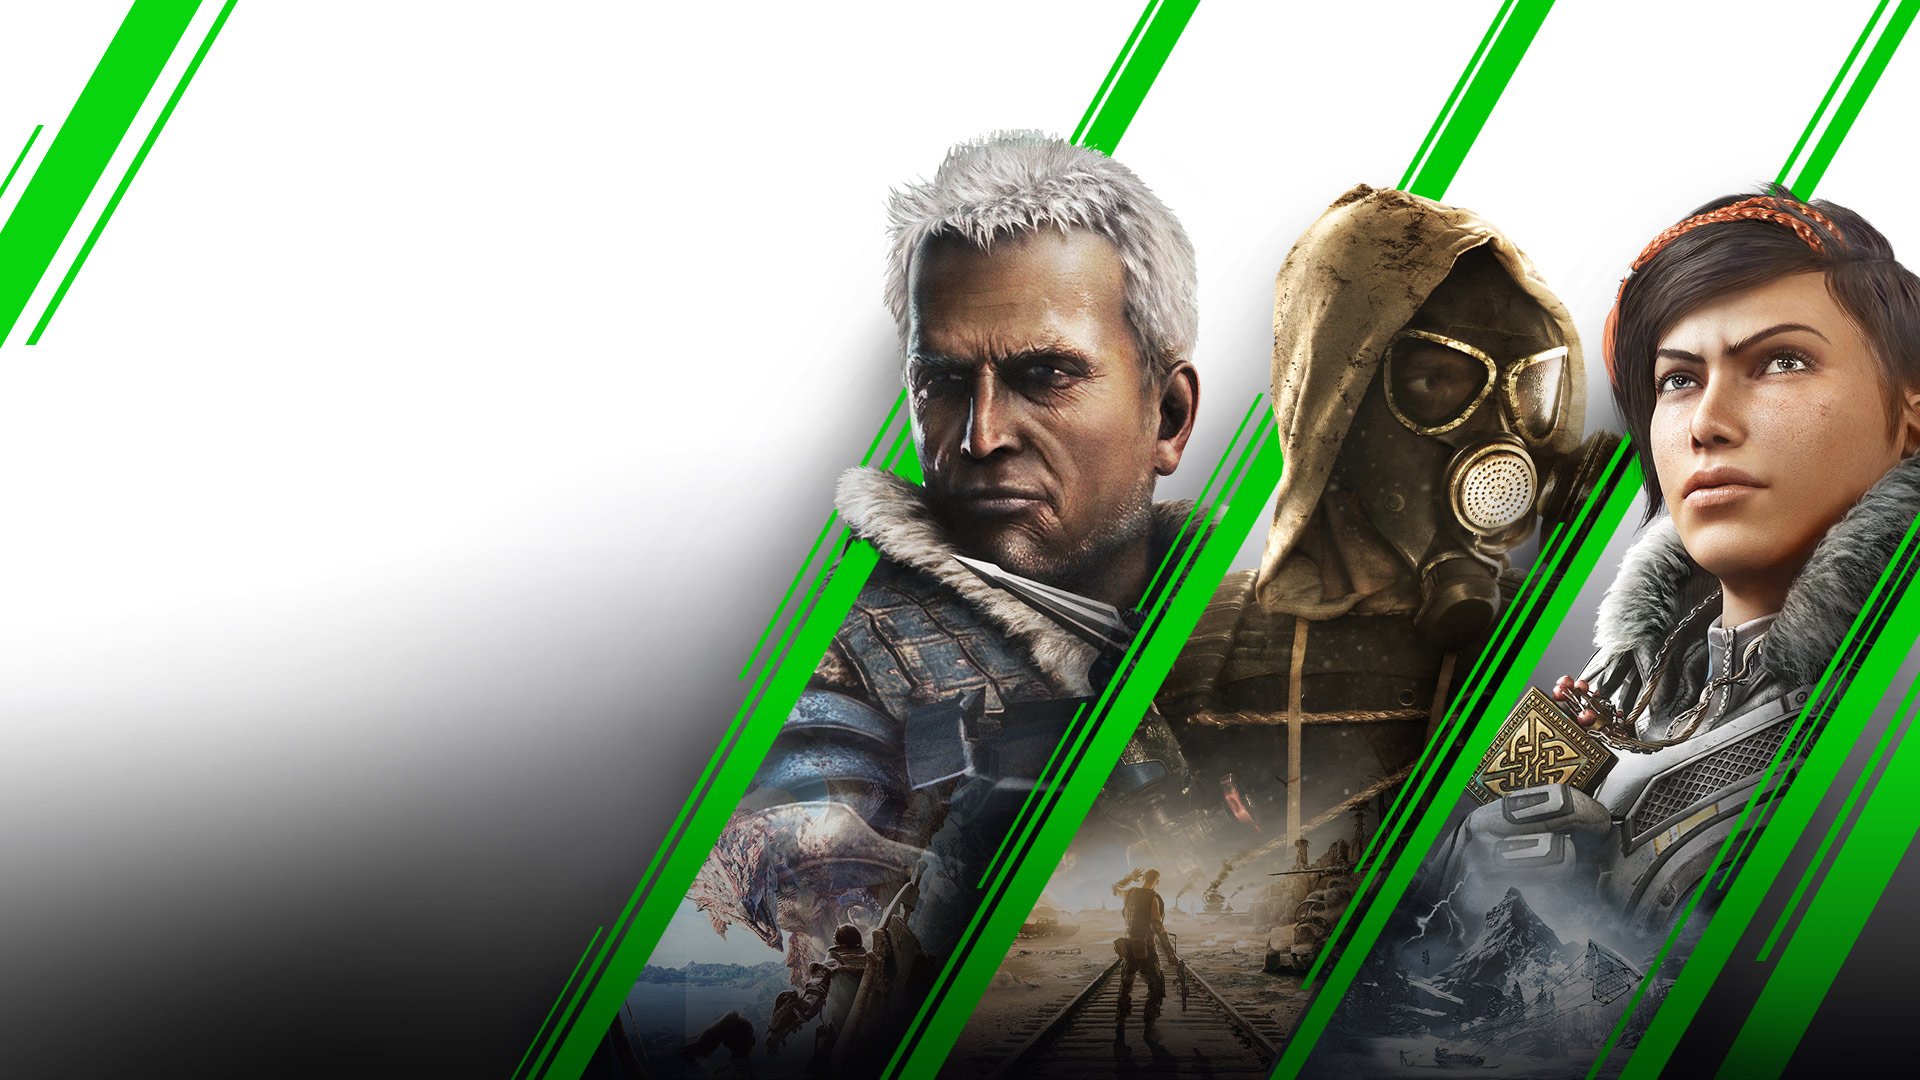 Un collage de juegos disponibles en Xbox, como Monster Hunter World, Metro Exodus y Gears 5.